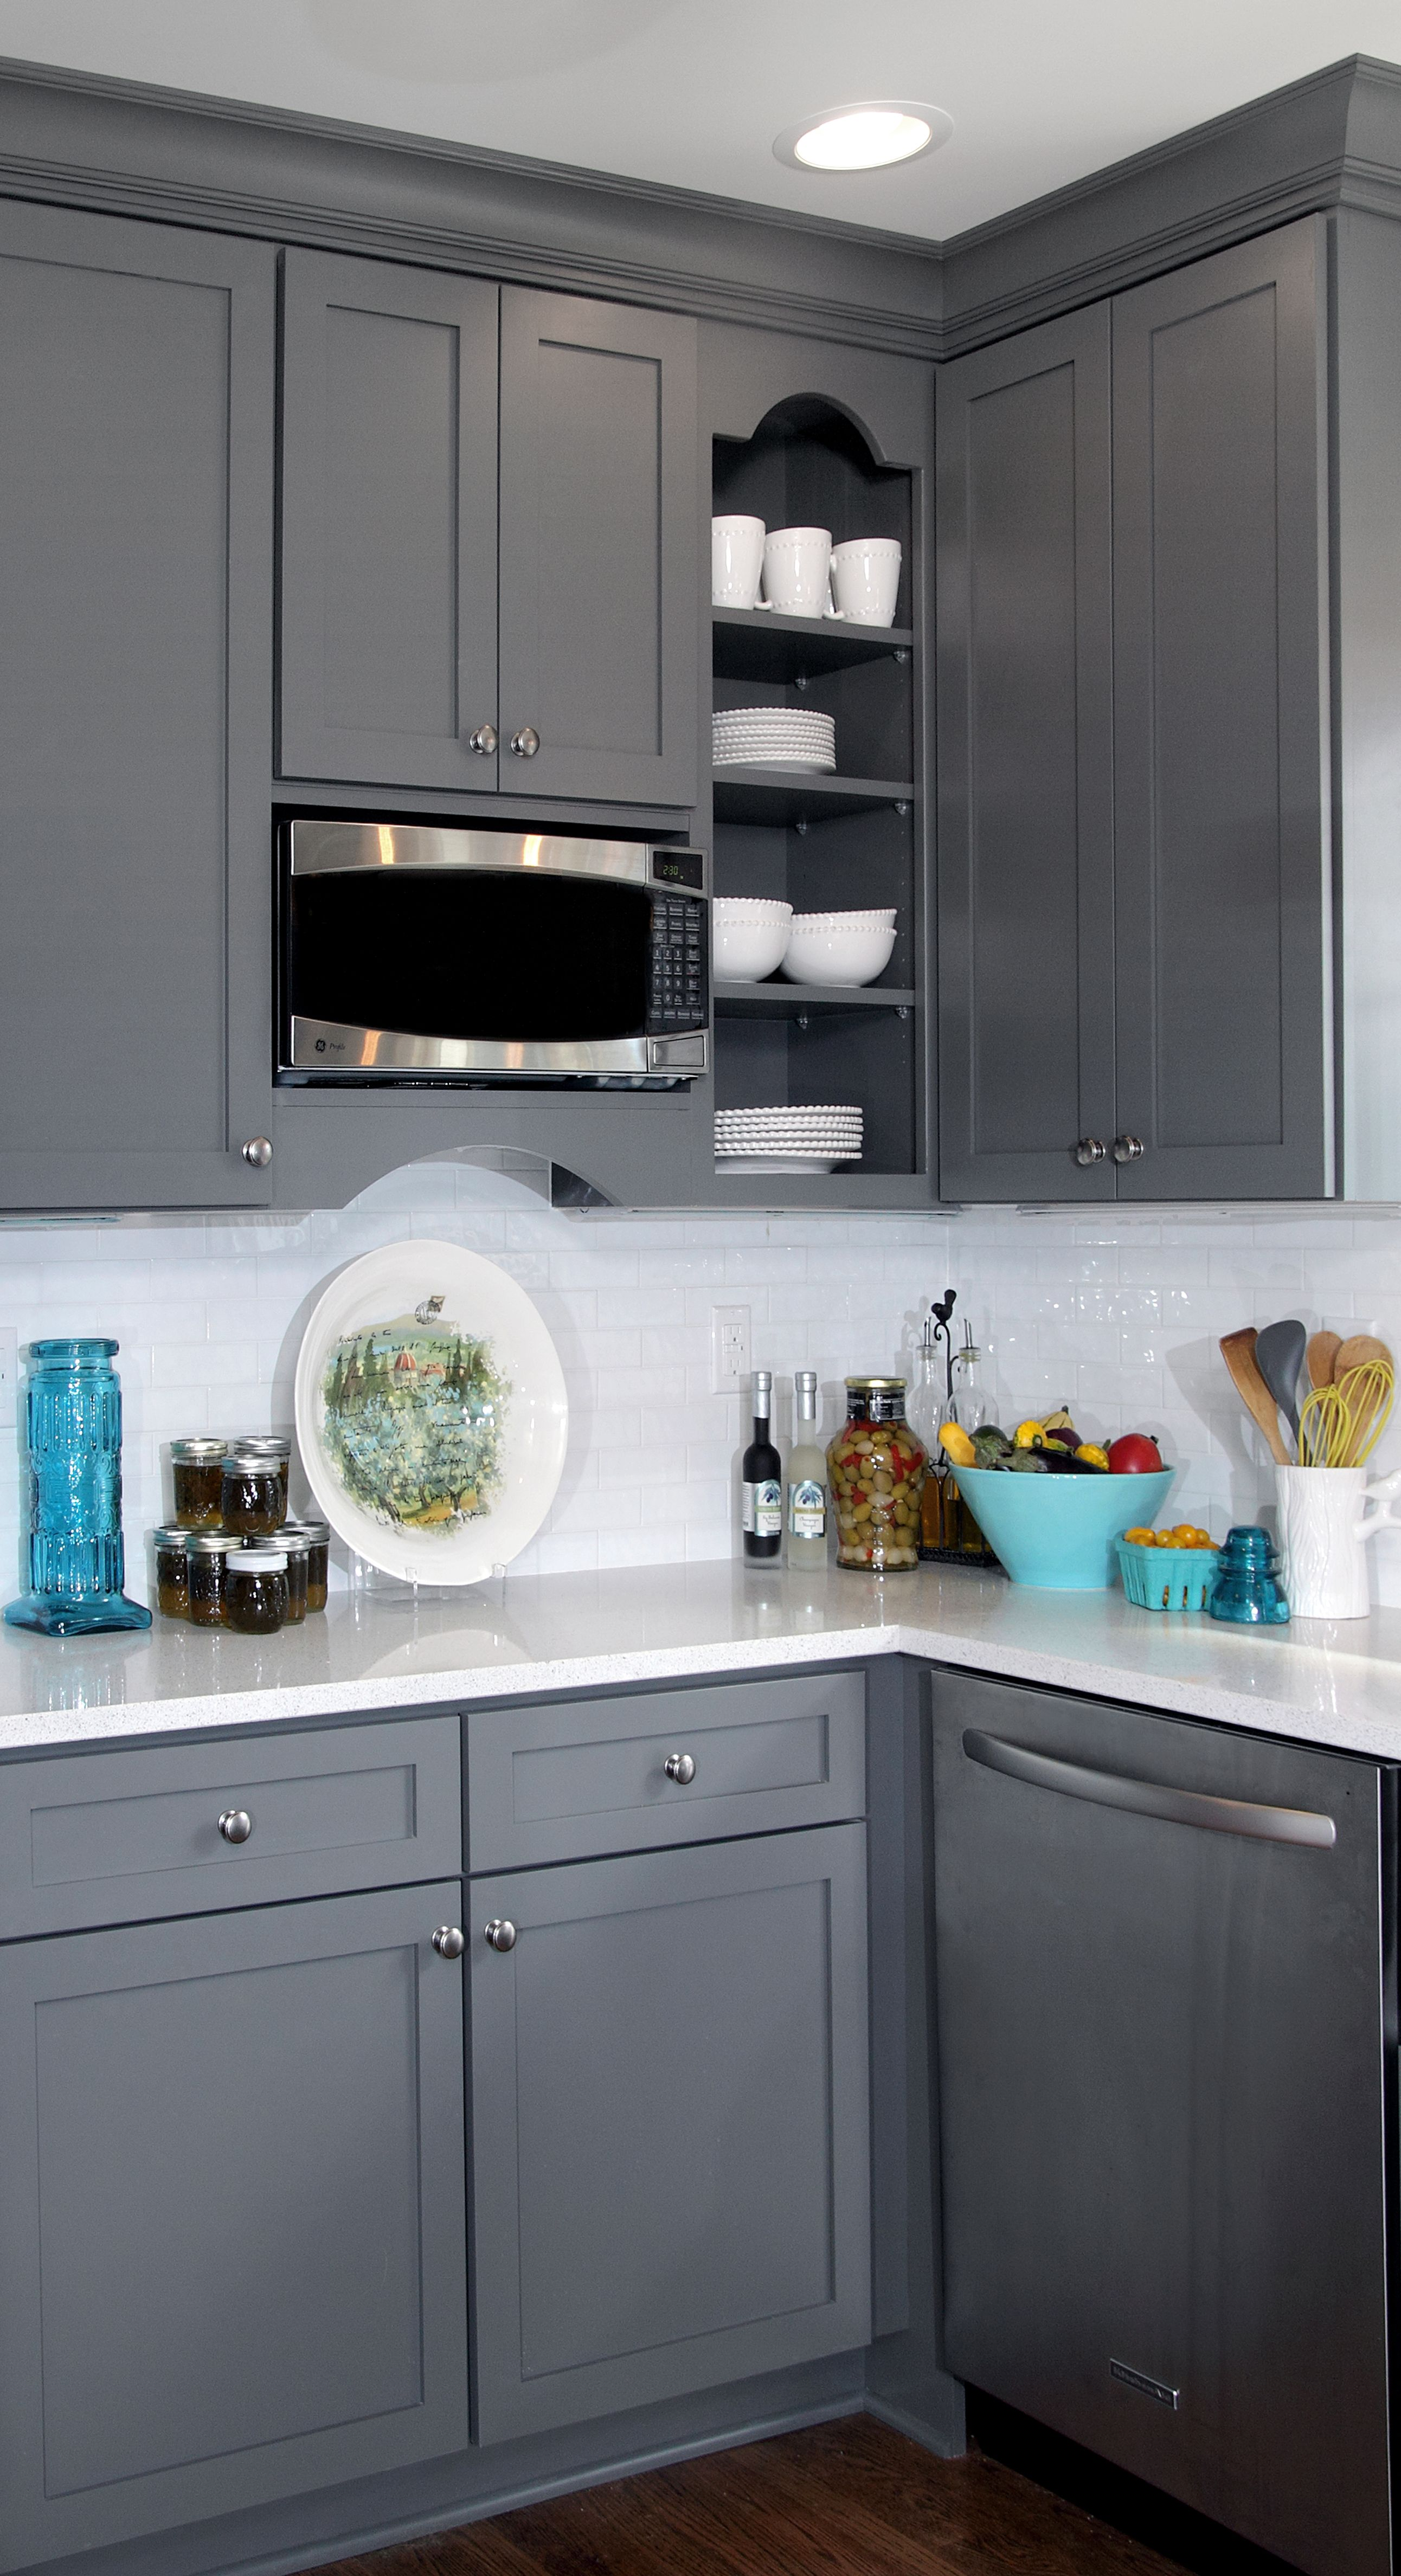 painted gray kitchen cabinets alexandria va and white transitional design with teal blue